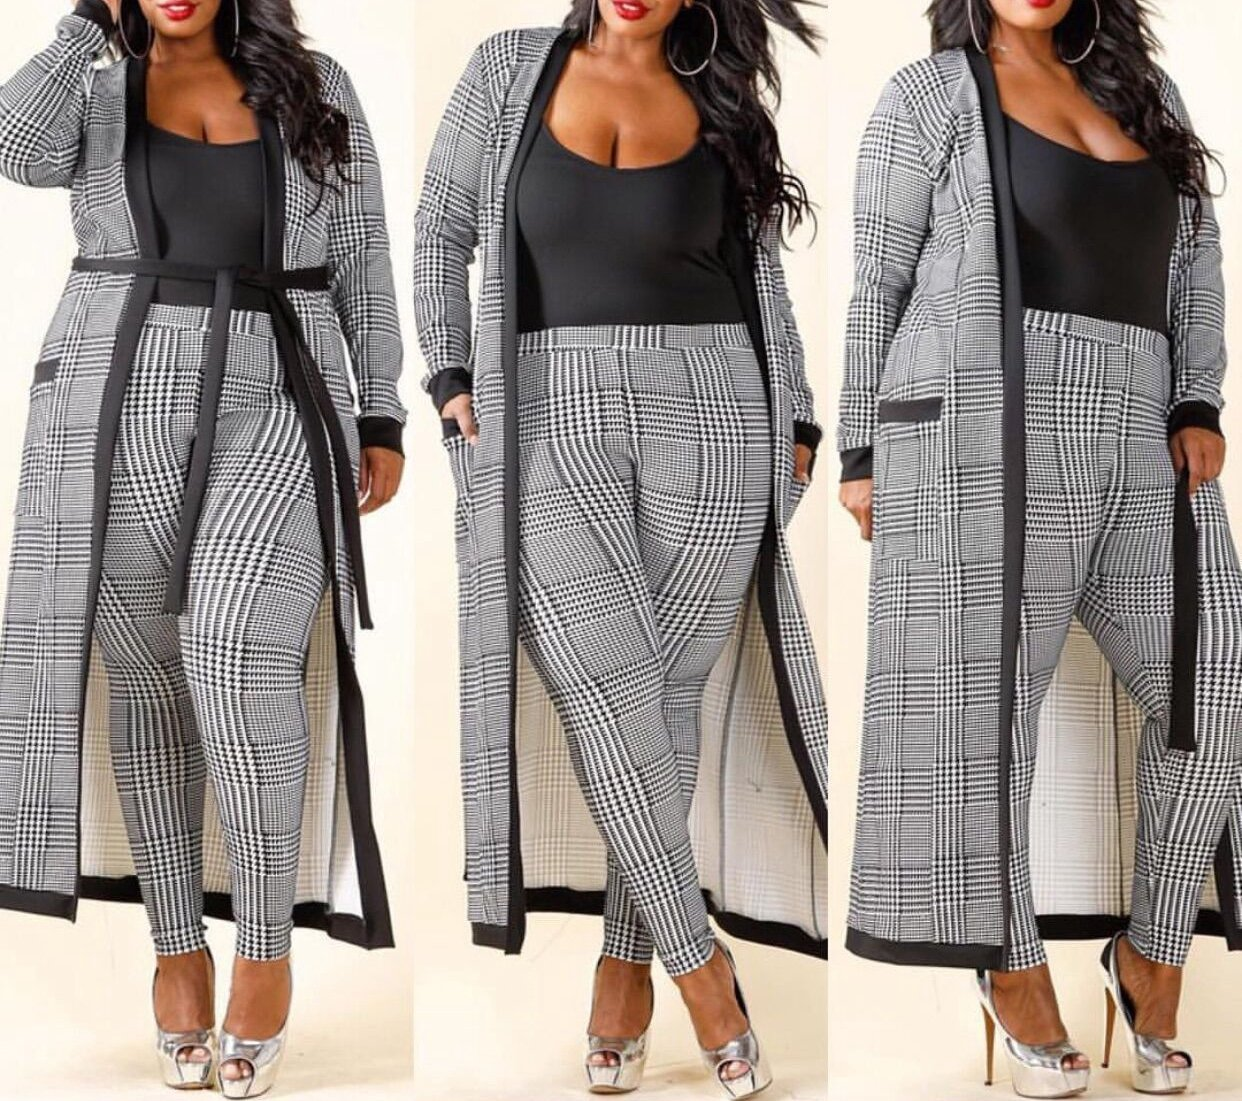 VERWIN Long Sleeve Plaid Tops and High Waist Skinny Pants Houndstooth Blazer Outfit 3 Sets XL by VERWIN (Image #4)